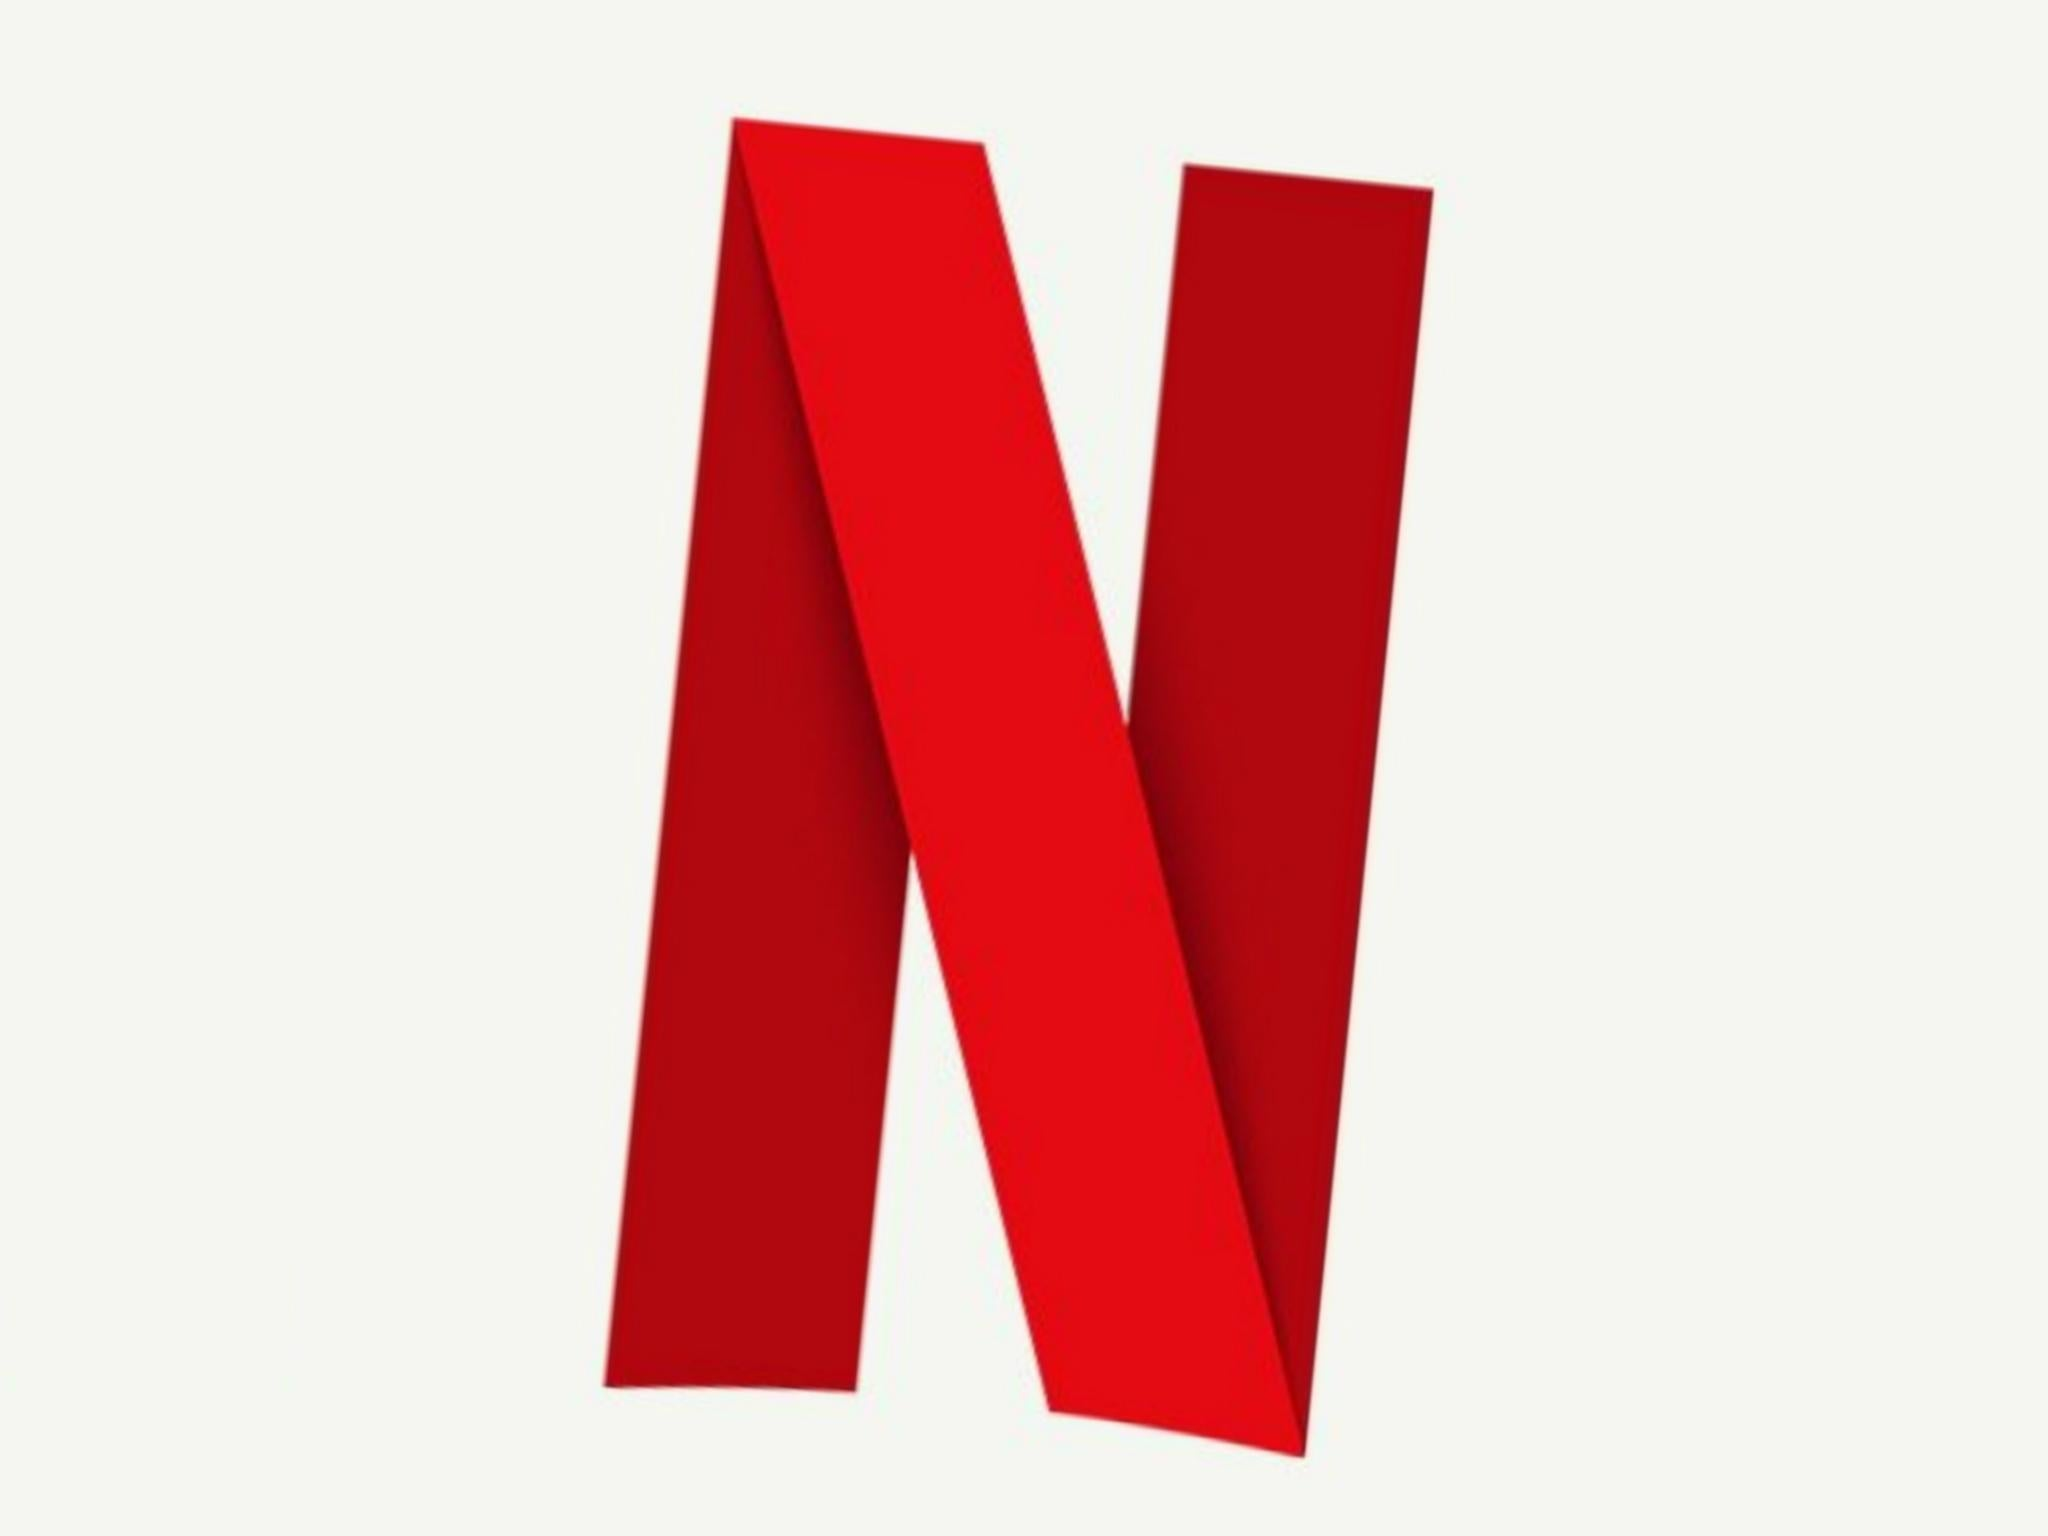 Netflix Codes How To Access Full Library Of Hidden Genres Films - The full netflix library could soon be available to everyone